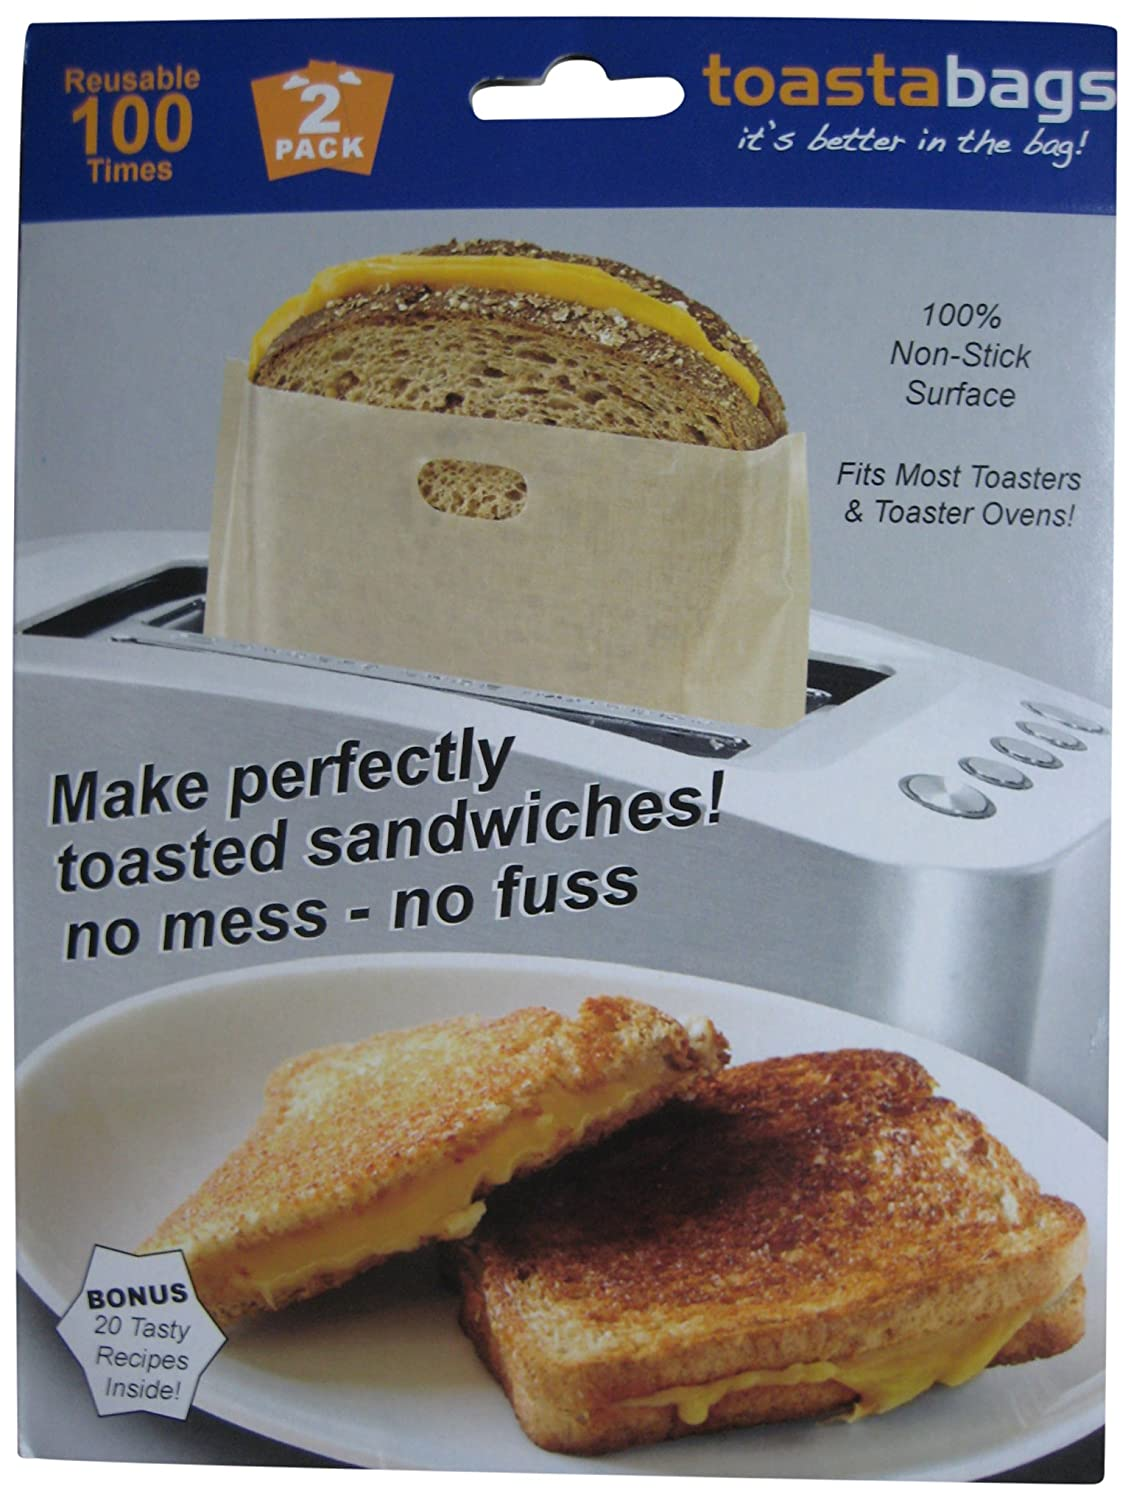 http://www.amazon.com/Toastabags-Reusable-Non-Stick-Sandwich-Grilling/dp/B001UHNMM0/ref=sr_1_1?s=home-garden&ie=UTF8&qid=1398643173&sr=1-1&keywords=toaster+pockets